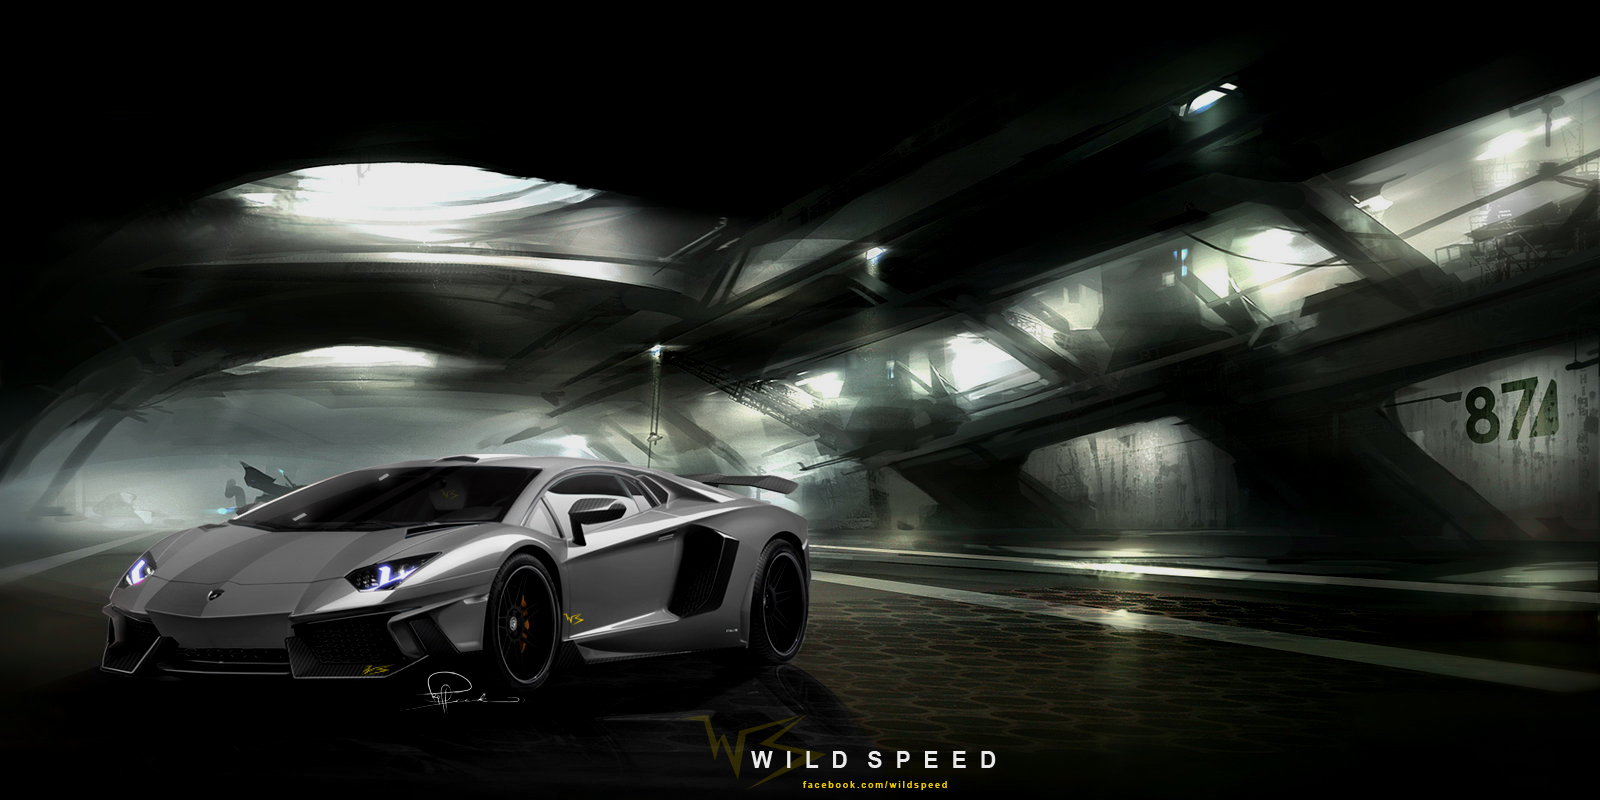 Luxury Lamborghini Cars Lamborghini Aventador Wallpaper Hd 1600x800